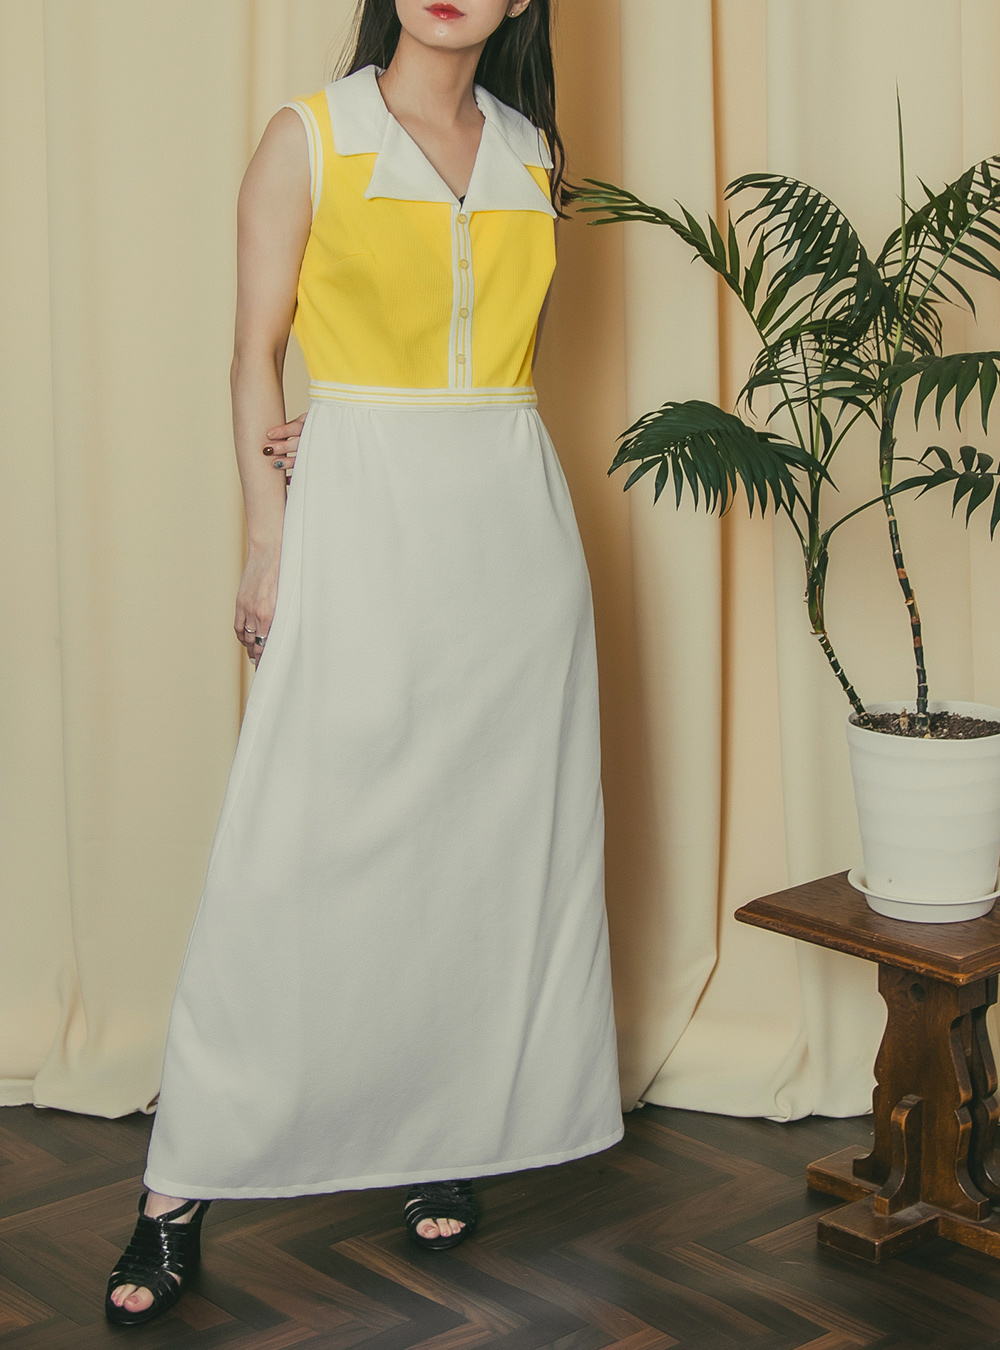 1970's Lemon Yellow × White Design Dress